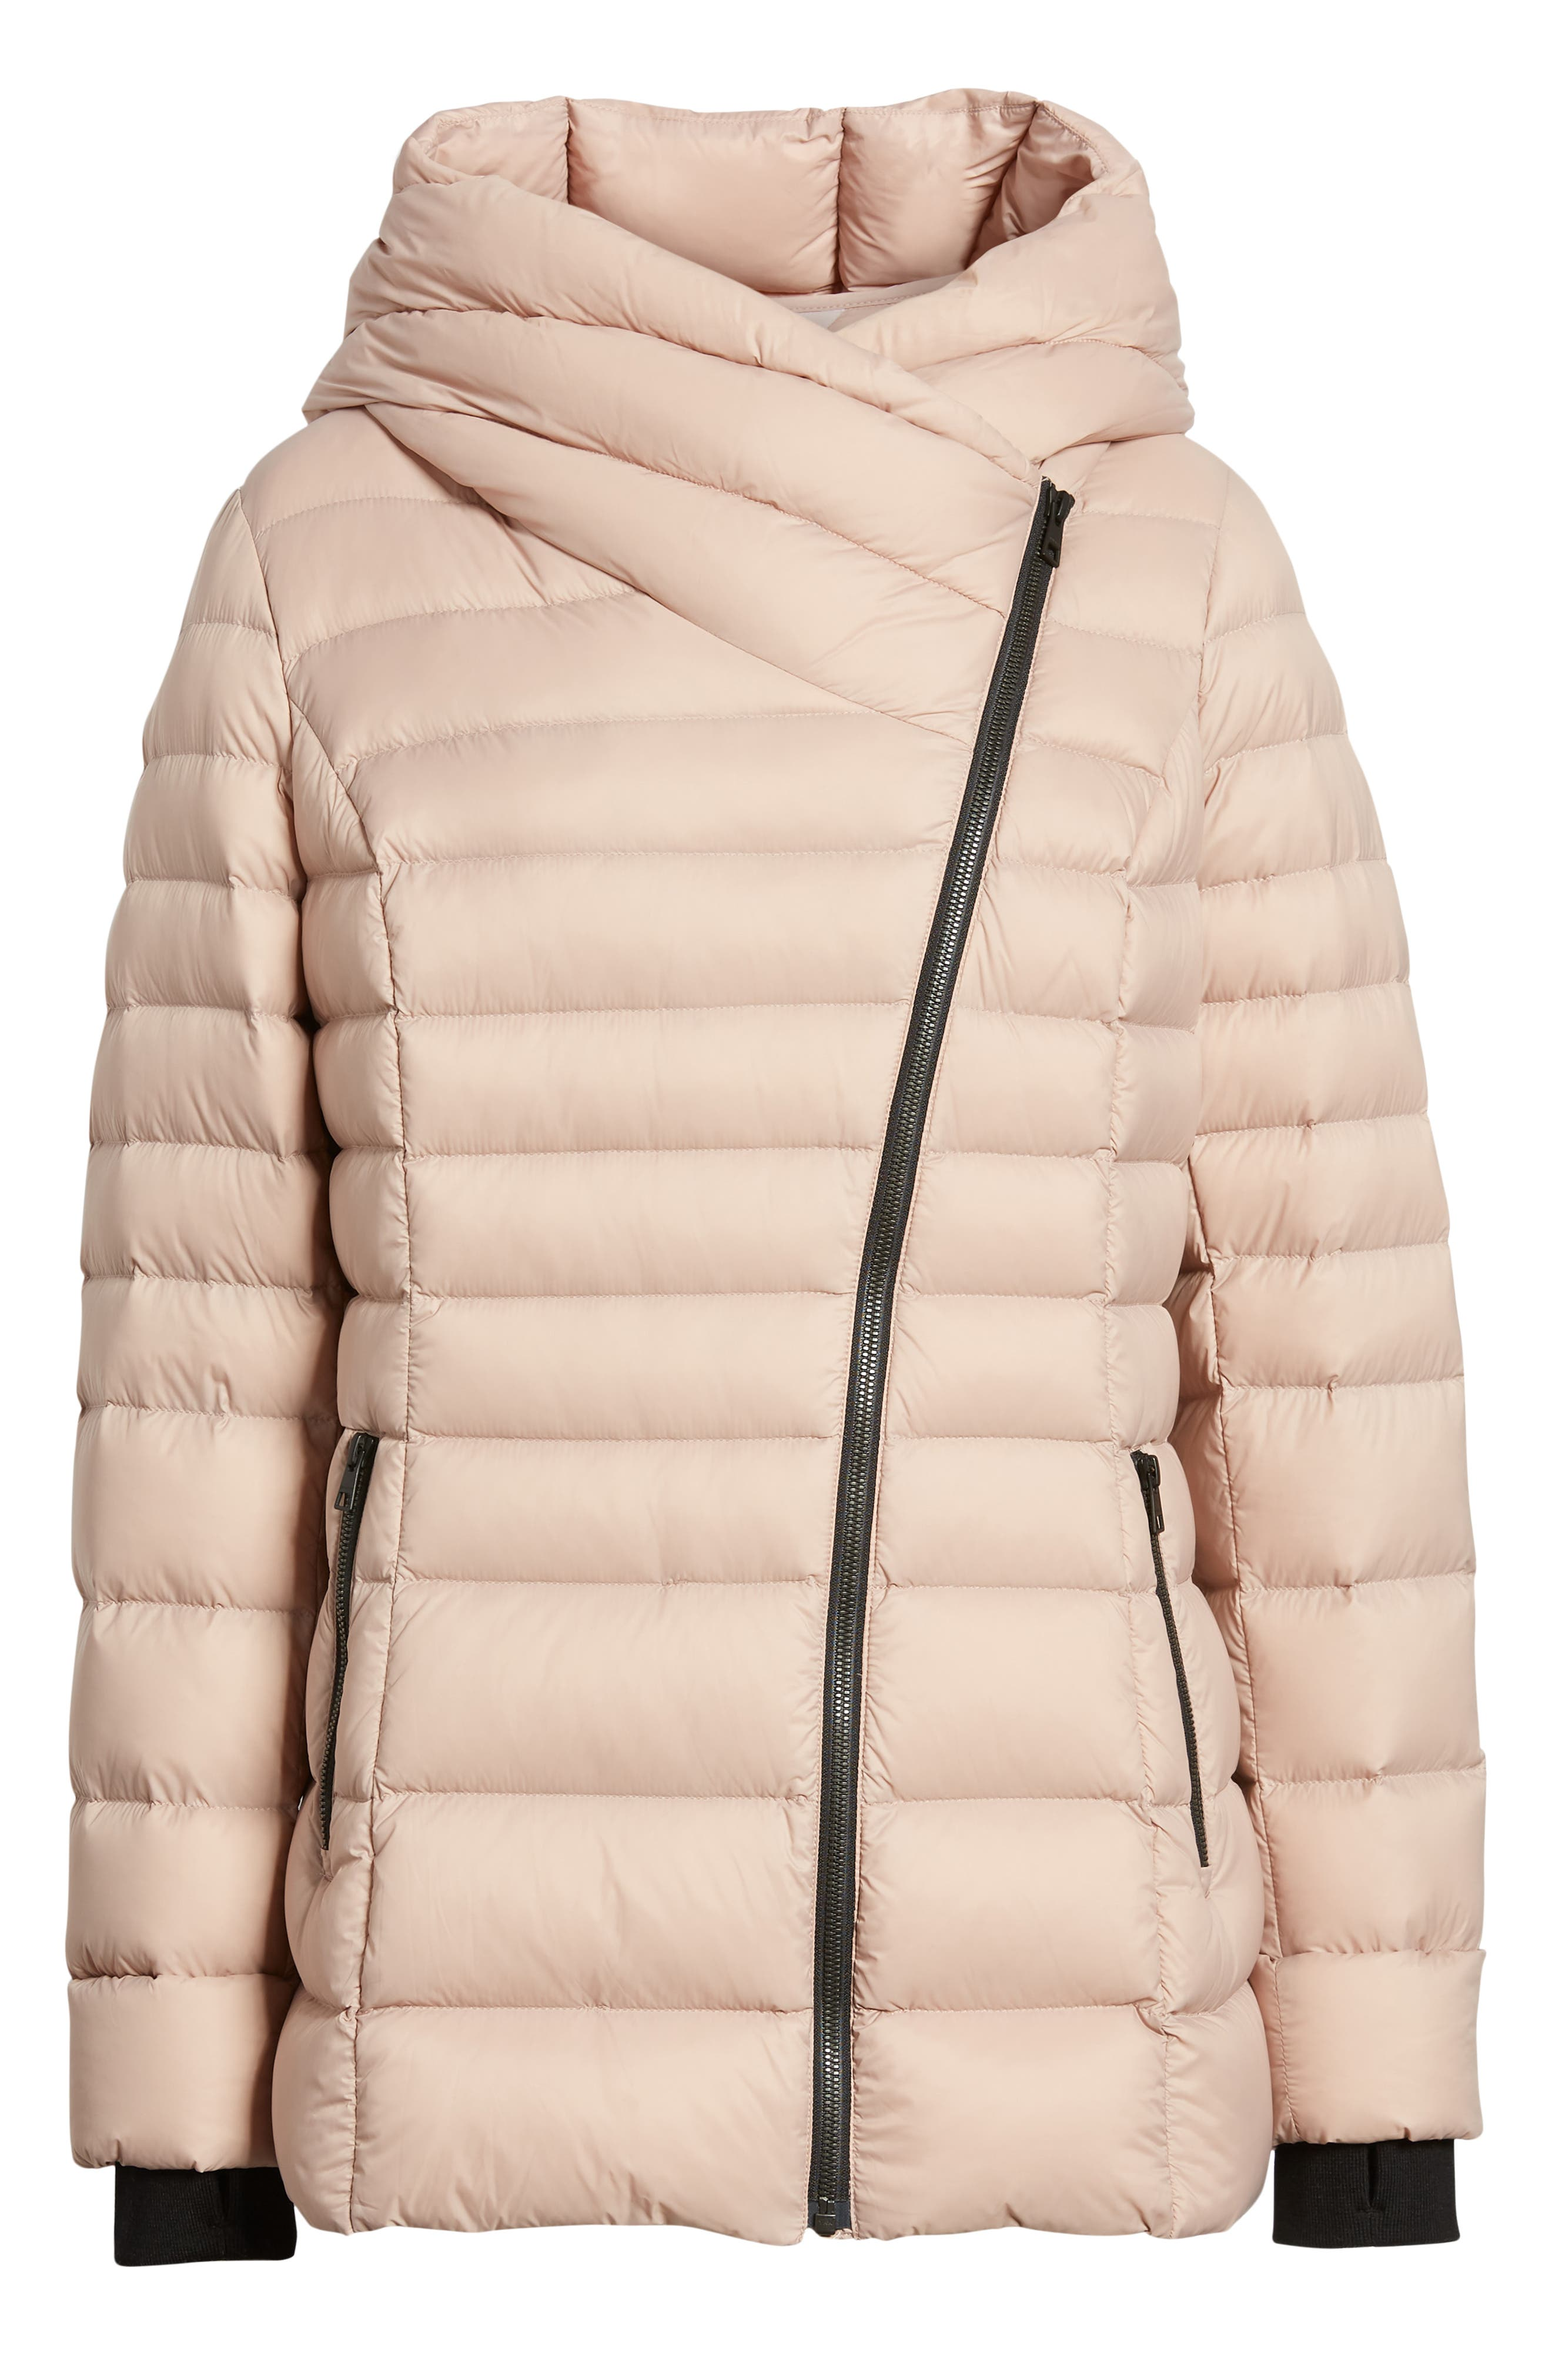 Hooded Down Puffer Jacket,                             Alternate thumbnail 6, color,                             QUARTZ